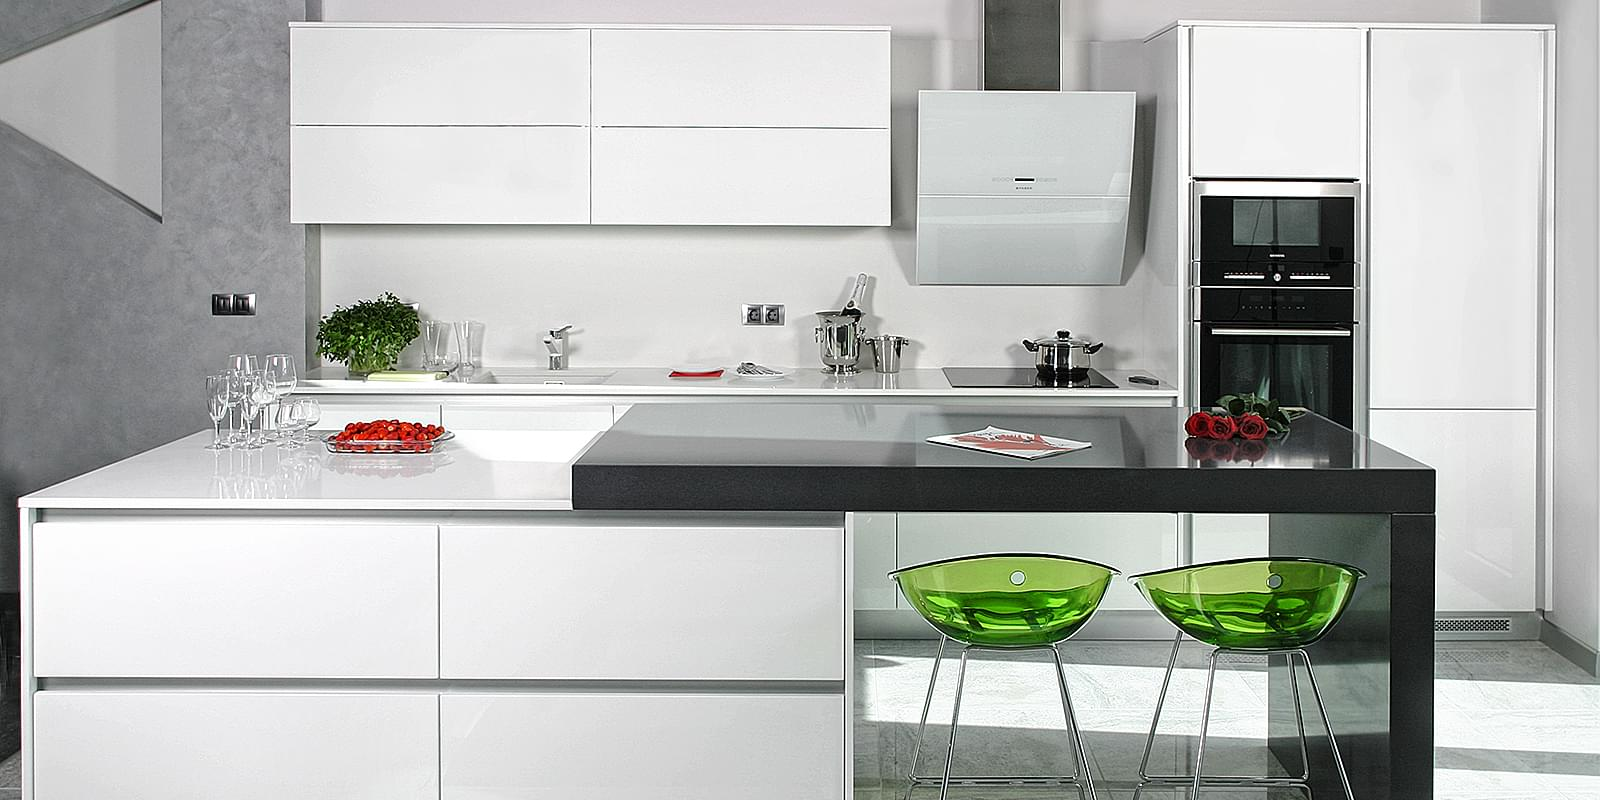 Dialog Kitchens - Liviana